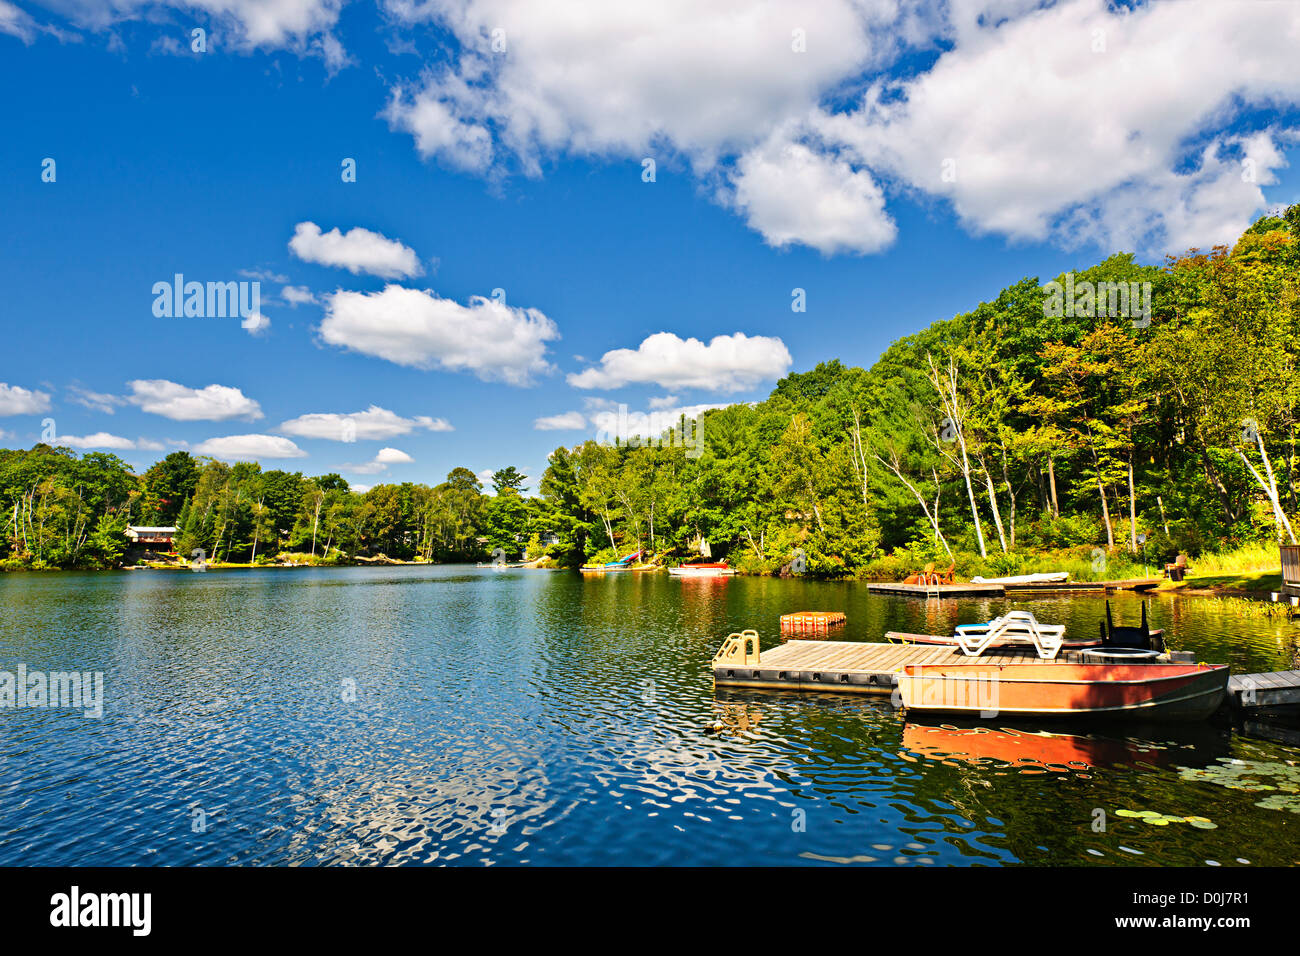 Beautiful lake with docks in Ontario Canada cottage country - Stock Image